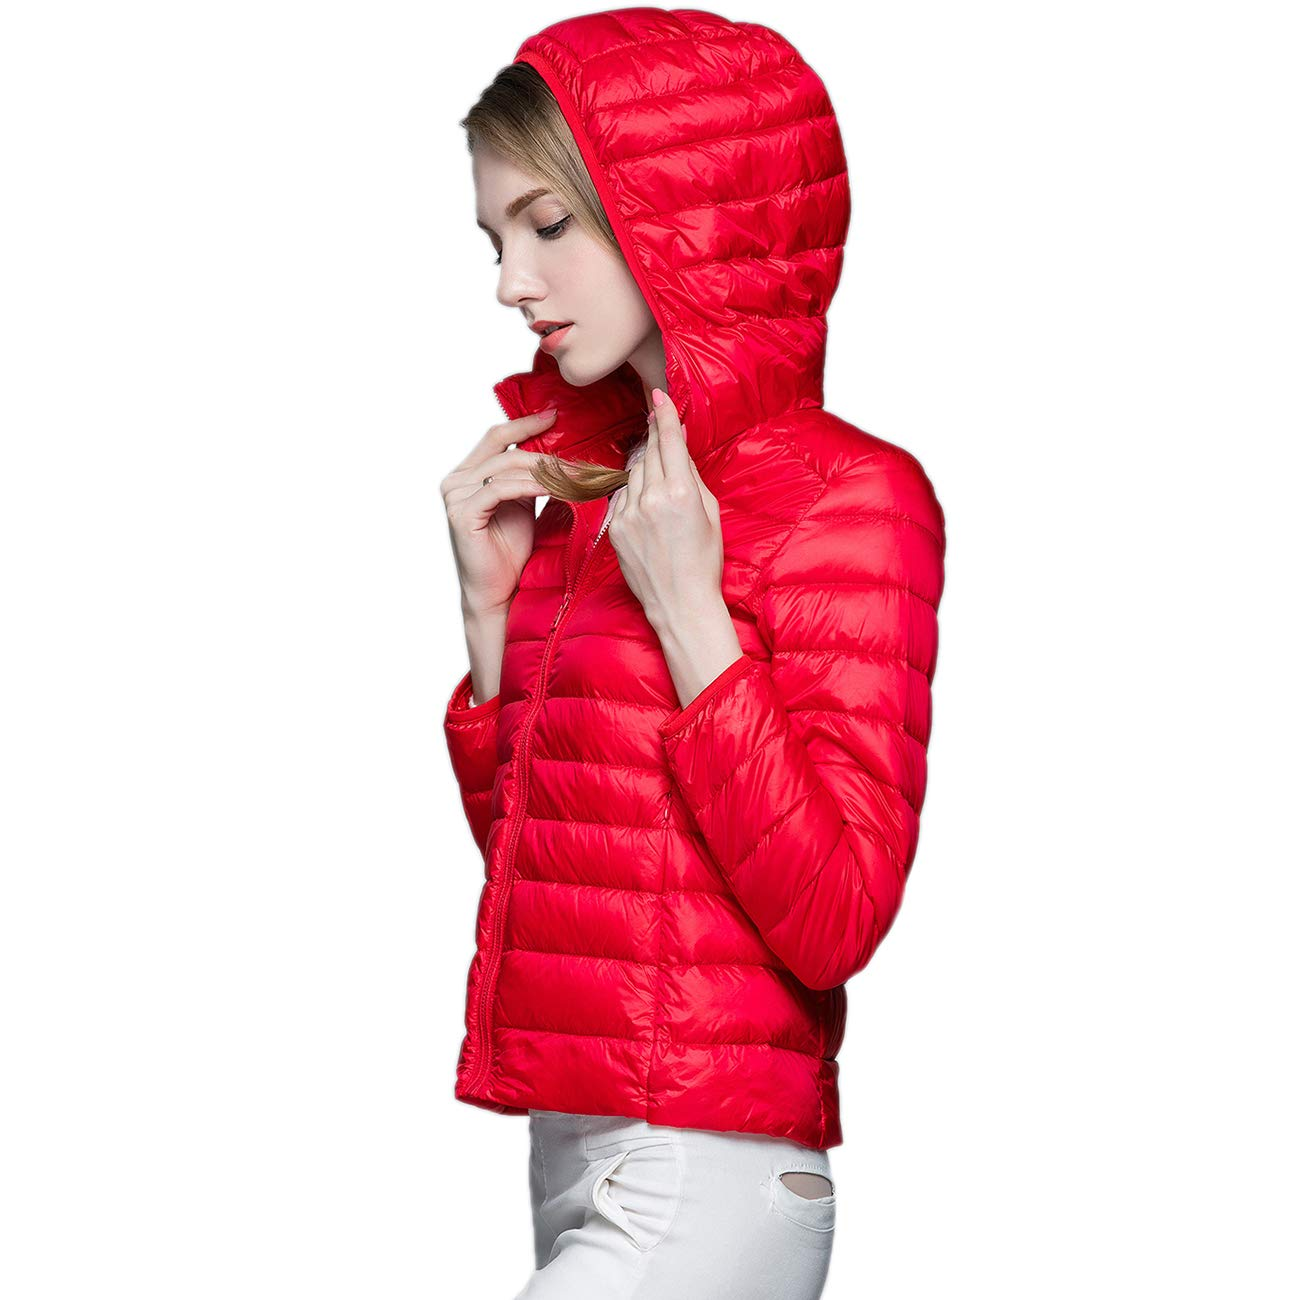 KIWI RATA Women's Hooded Packable Ultra Light Weight Short Down Jacket - Travel Bag